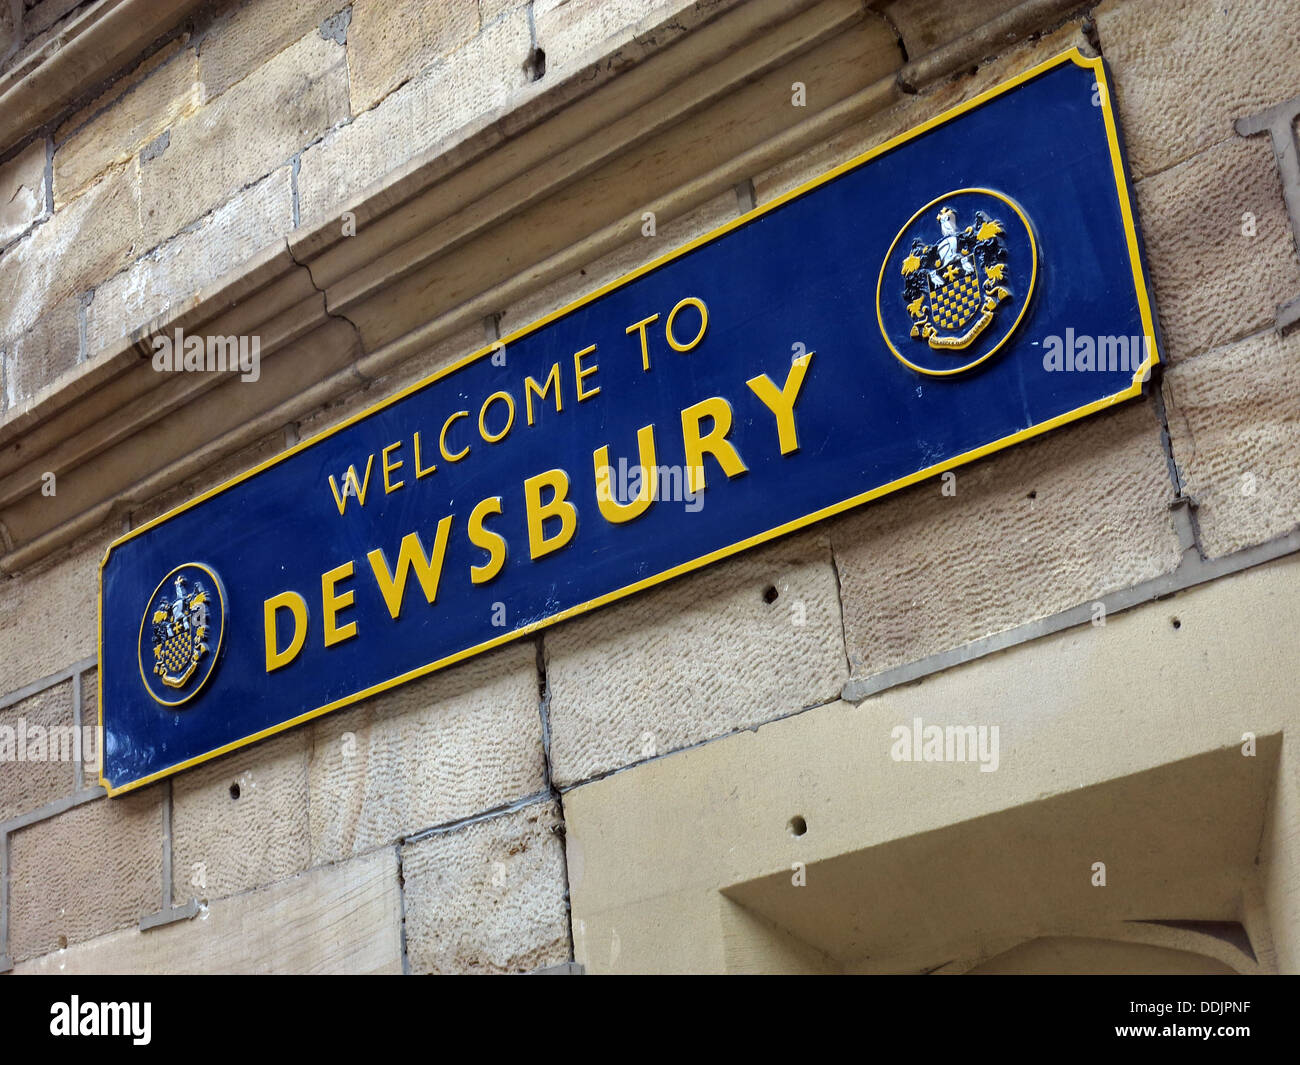 Welcome to Dewsbury sign, Station,West Yorkshire, England UK - Stock Image